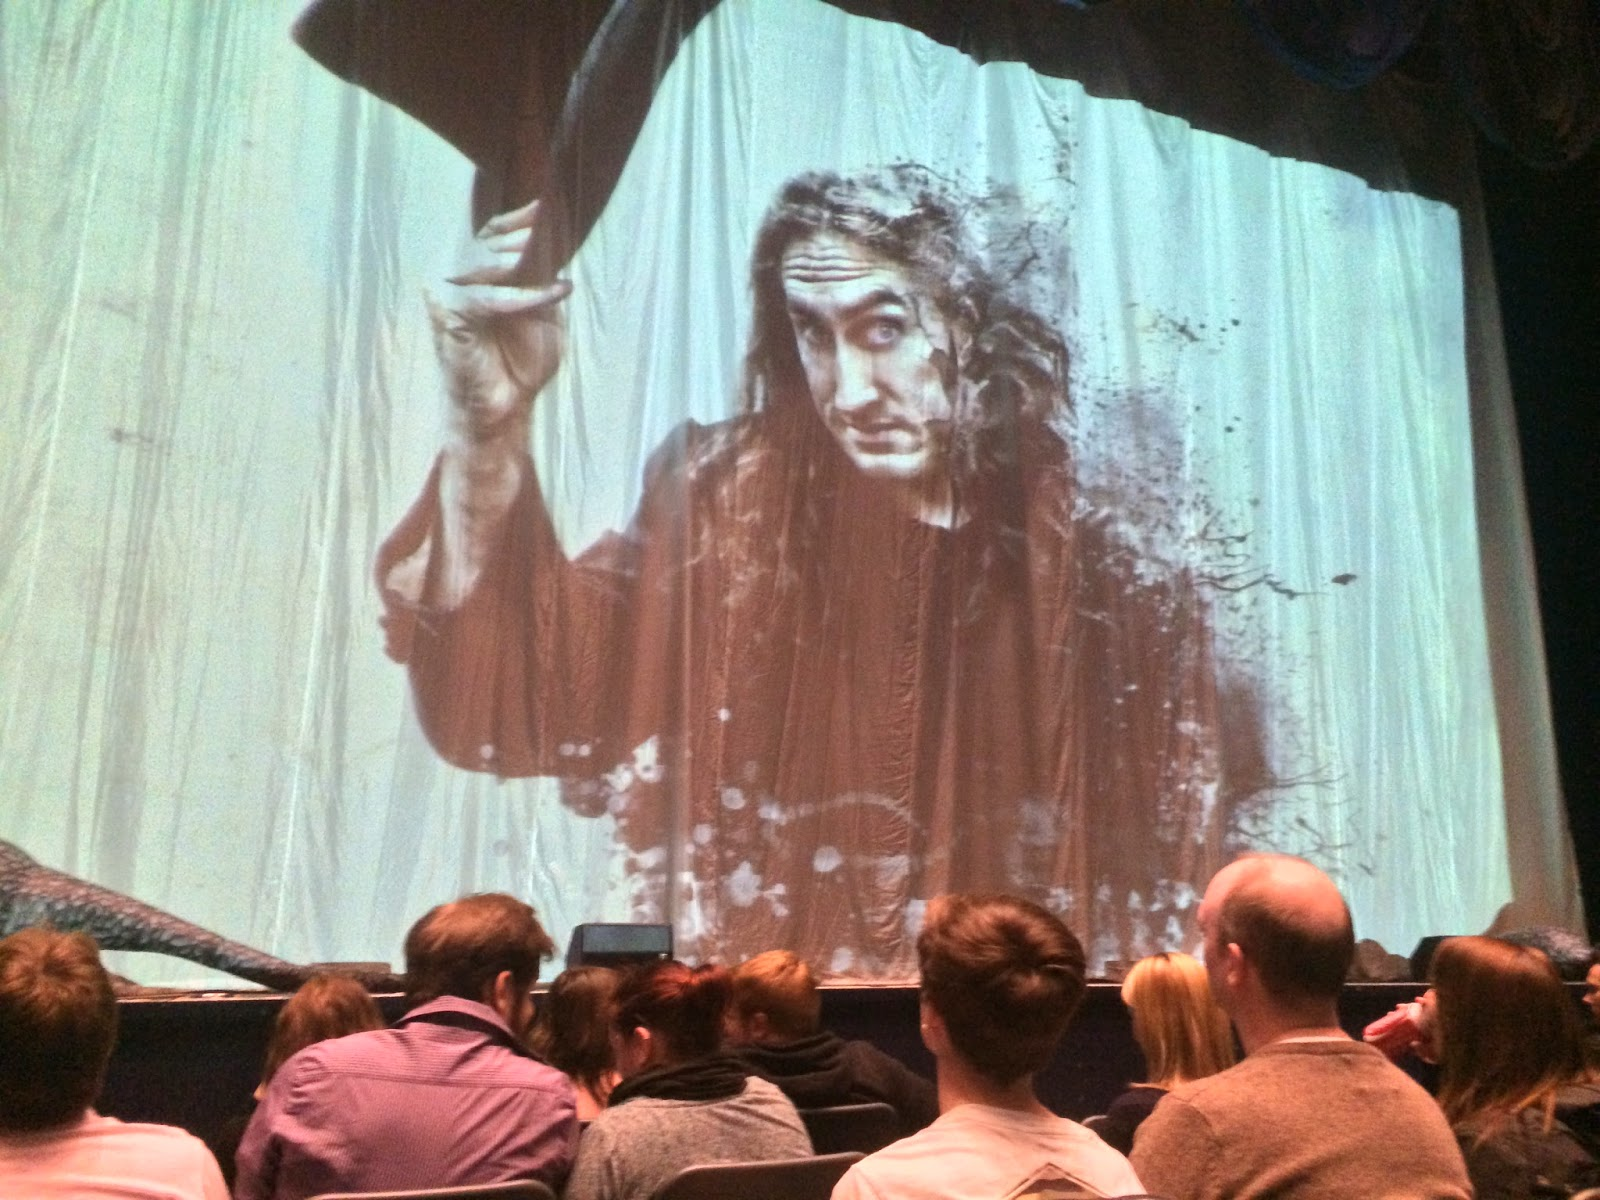 Ross Noble Tangentleman comedy at Portsmouth Guidhall